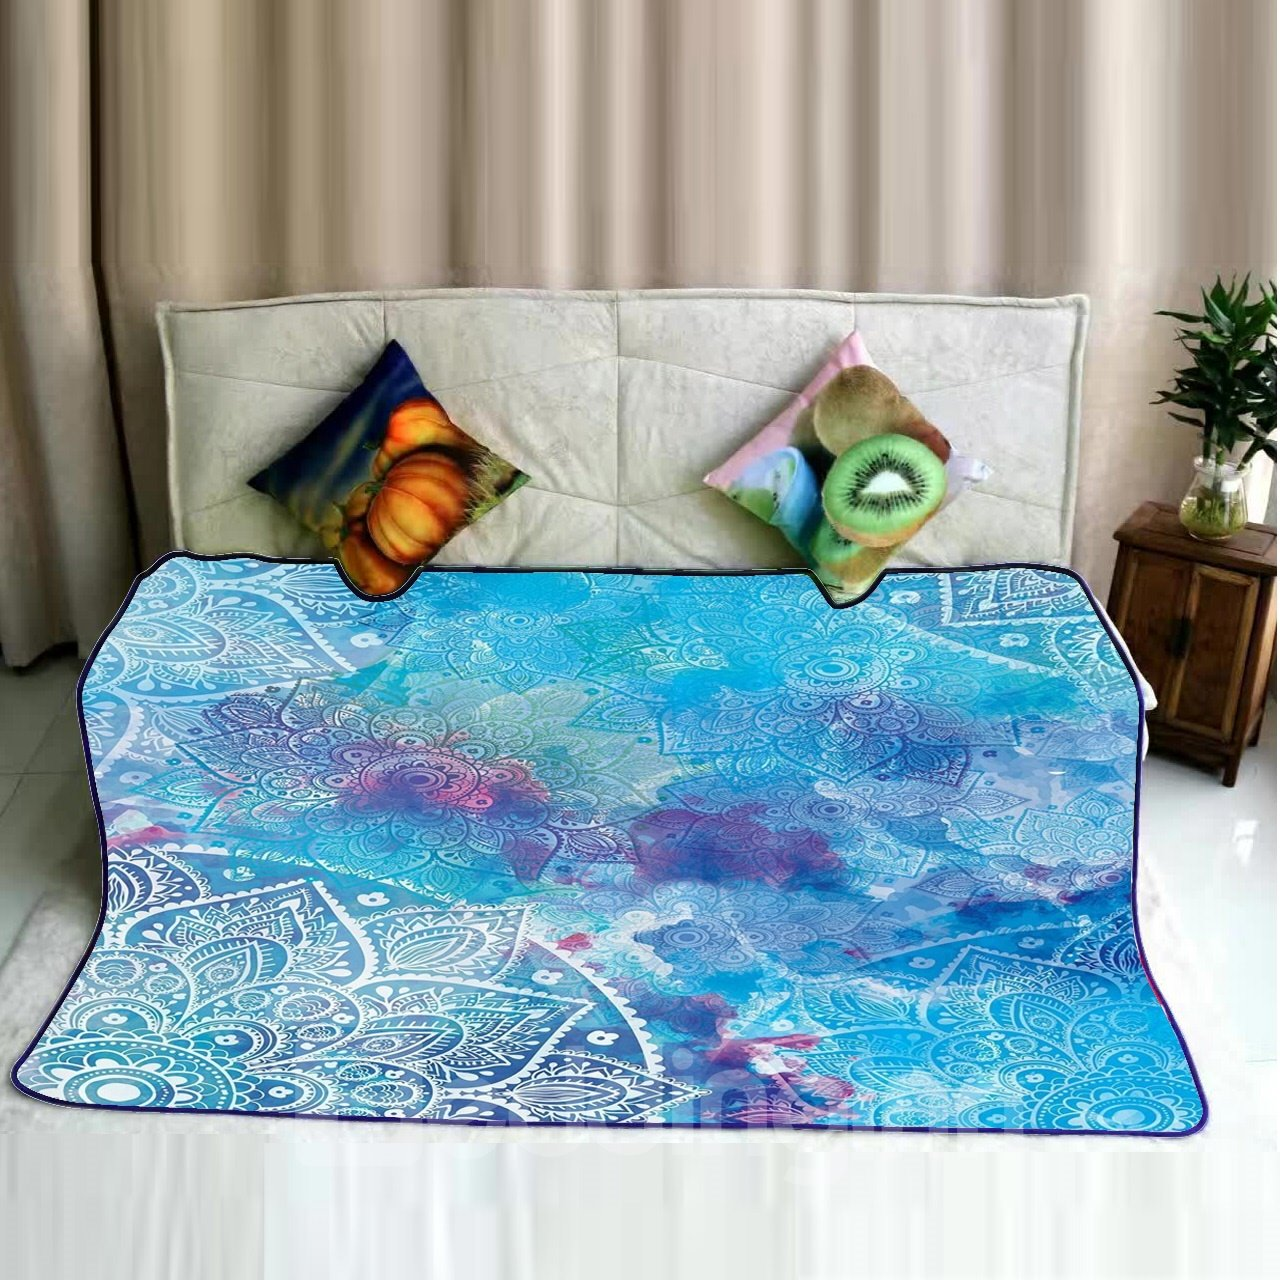 Water Painting Mandala Pattern Blue Flannel Super Soft Bed Blankets